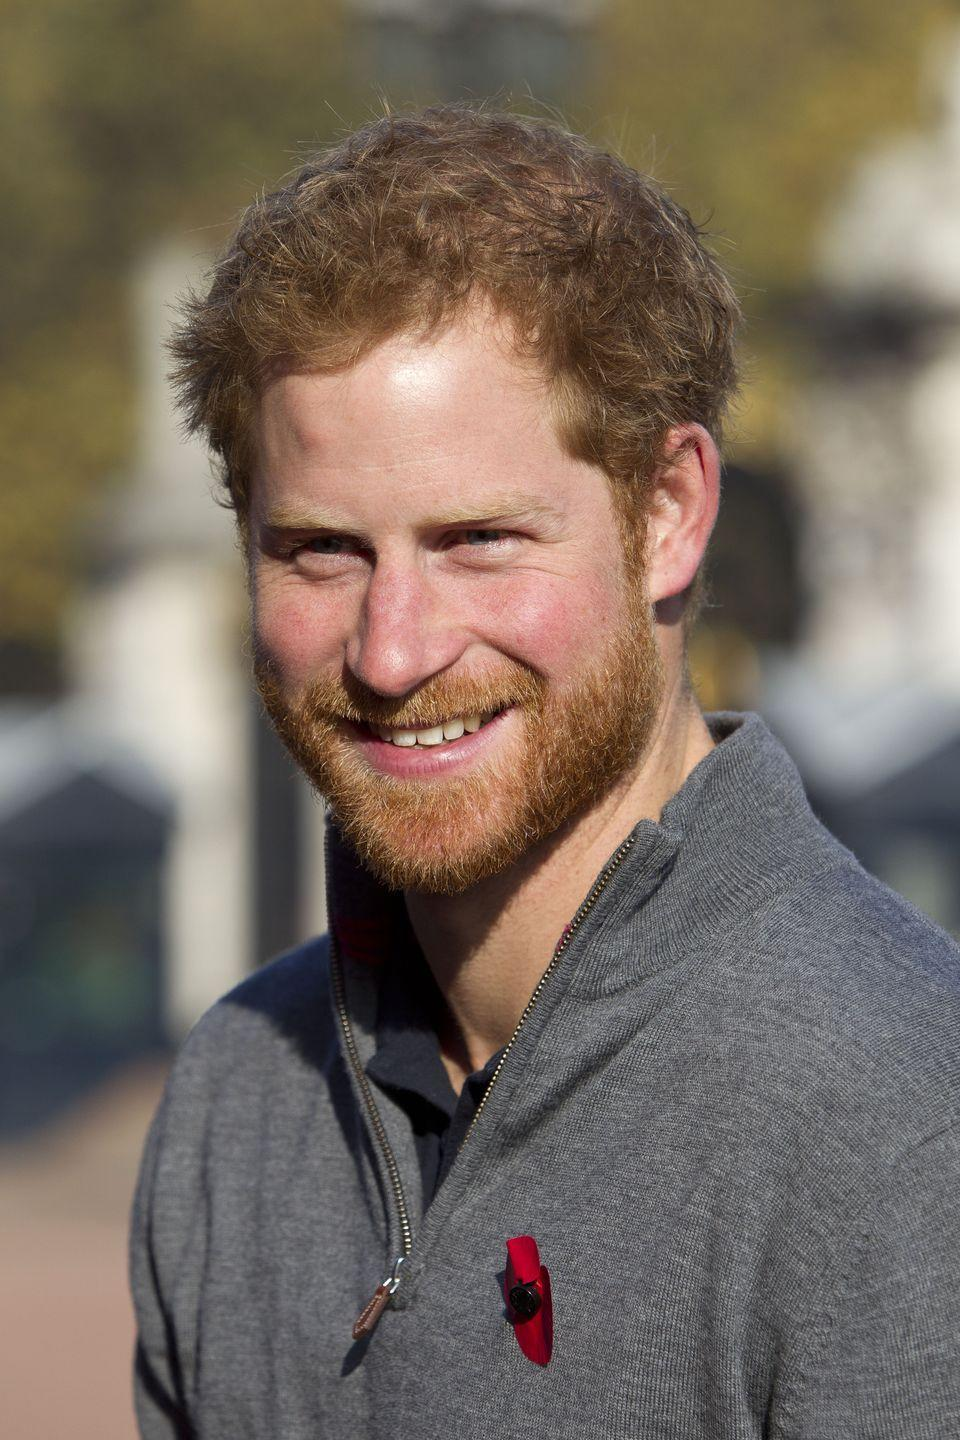 "<p>""I've spent most of my life saying 'I'm fine,'"" <span class=""redactor-unlink"">Prince Harry</span> said in an <a href=""http://www.telegraph.co.uk/opinion/2017/04/16/takes-real-courage-speak-mental-health-let-prince-harry-encourage/"" rel=""nofollow noopener"" target=""_blank"" data-ylk=""slk:interview"" class=""link rapid-noclick-resp"">interview</a> with The Telegraph journalist Bryony Gordon on her mental health podcast. ""I can safely say that losing my mum at the age of 12 and therefore shutting down all of my emotions for the last 20 years has had a quite serious effect on not only my personal life but also my work as well...I have probably been very close to a complete breakdown on numerous occasions.""</p>"